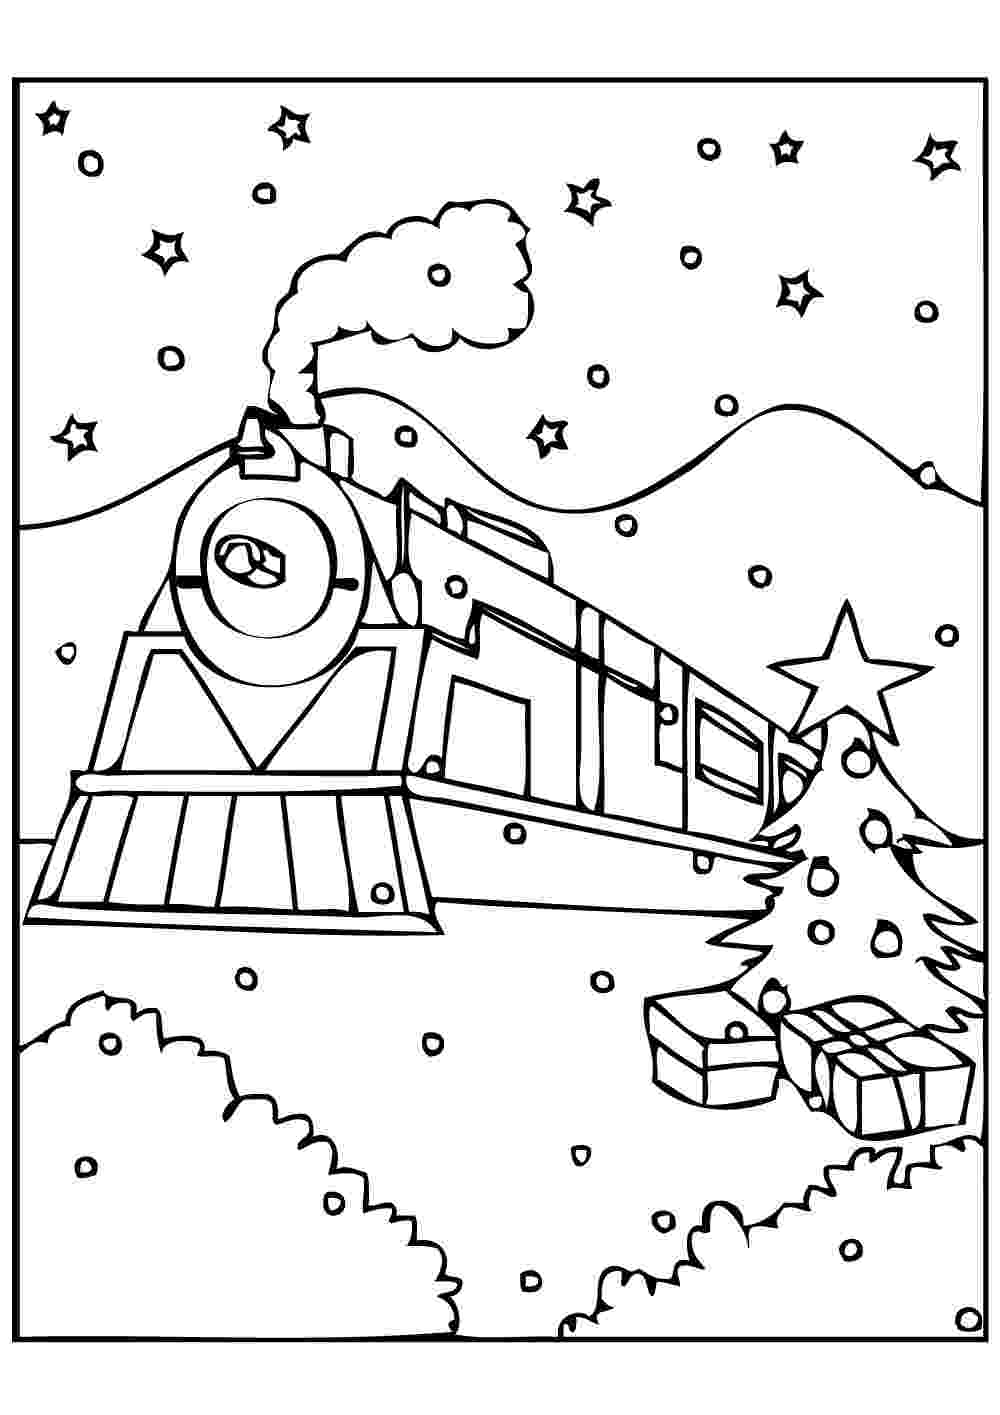 polar express coloring pages free coloring pages of quotpolar train expressquot polar coloring free express pages